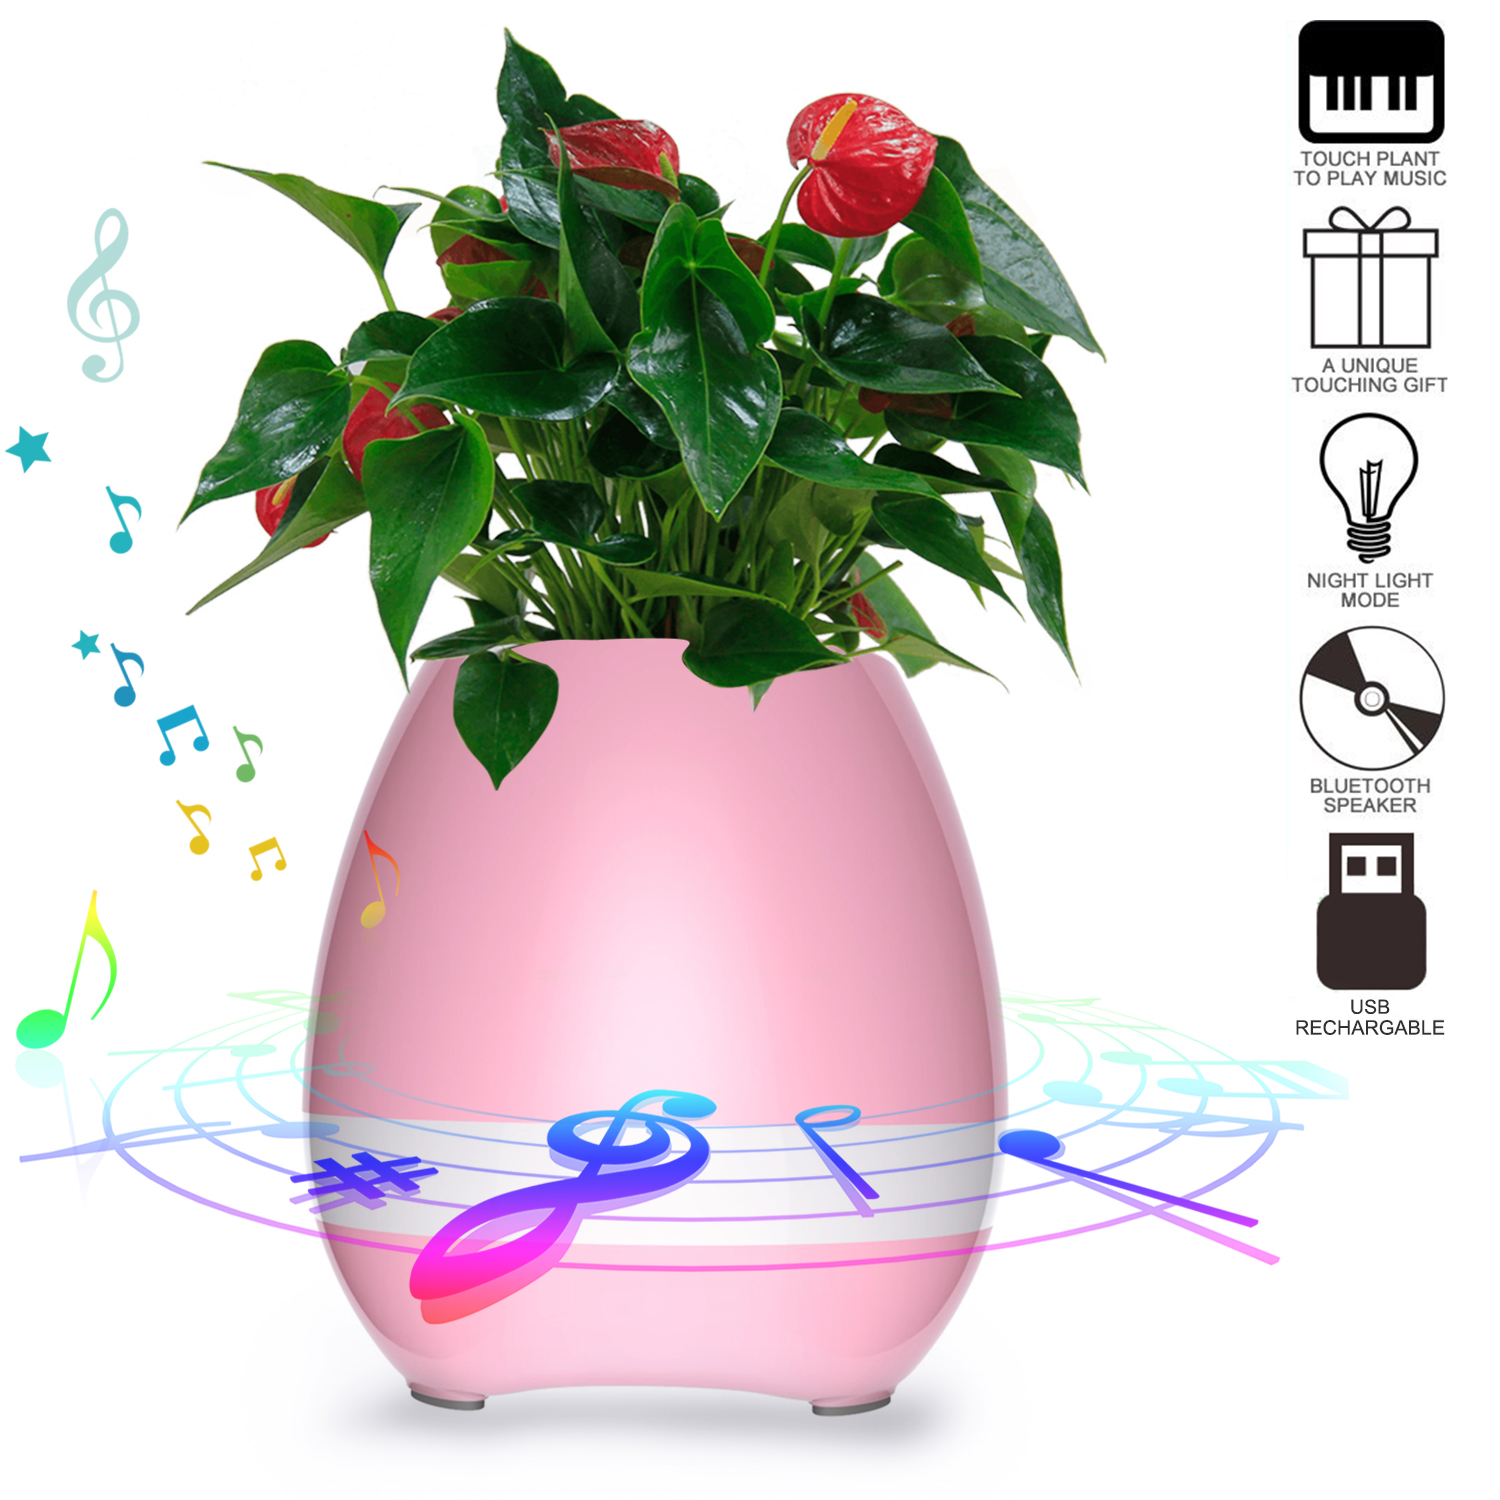 AGPtek Music Pot Flower Pot Touch Plant Piano Music Playing with Bluetooth Speaker and LED Light